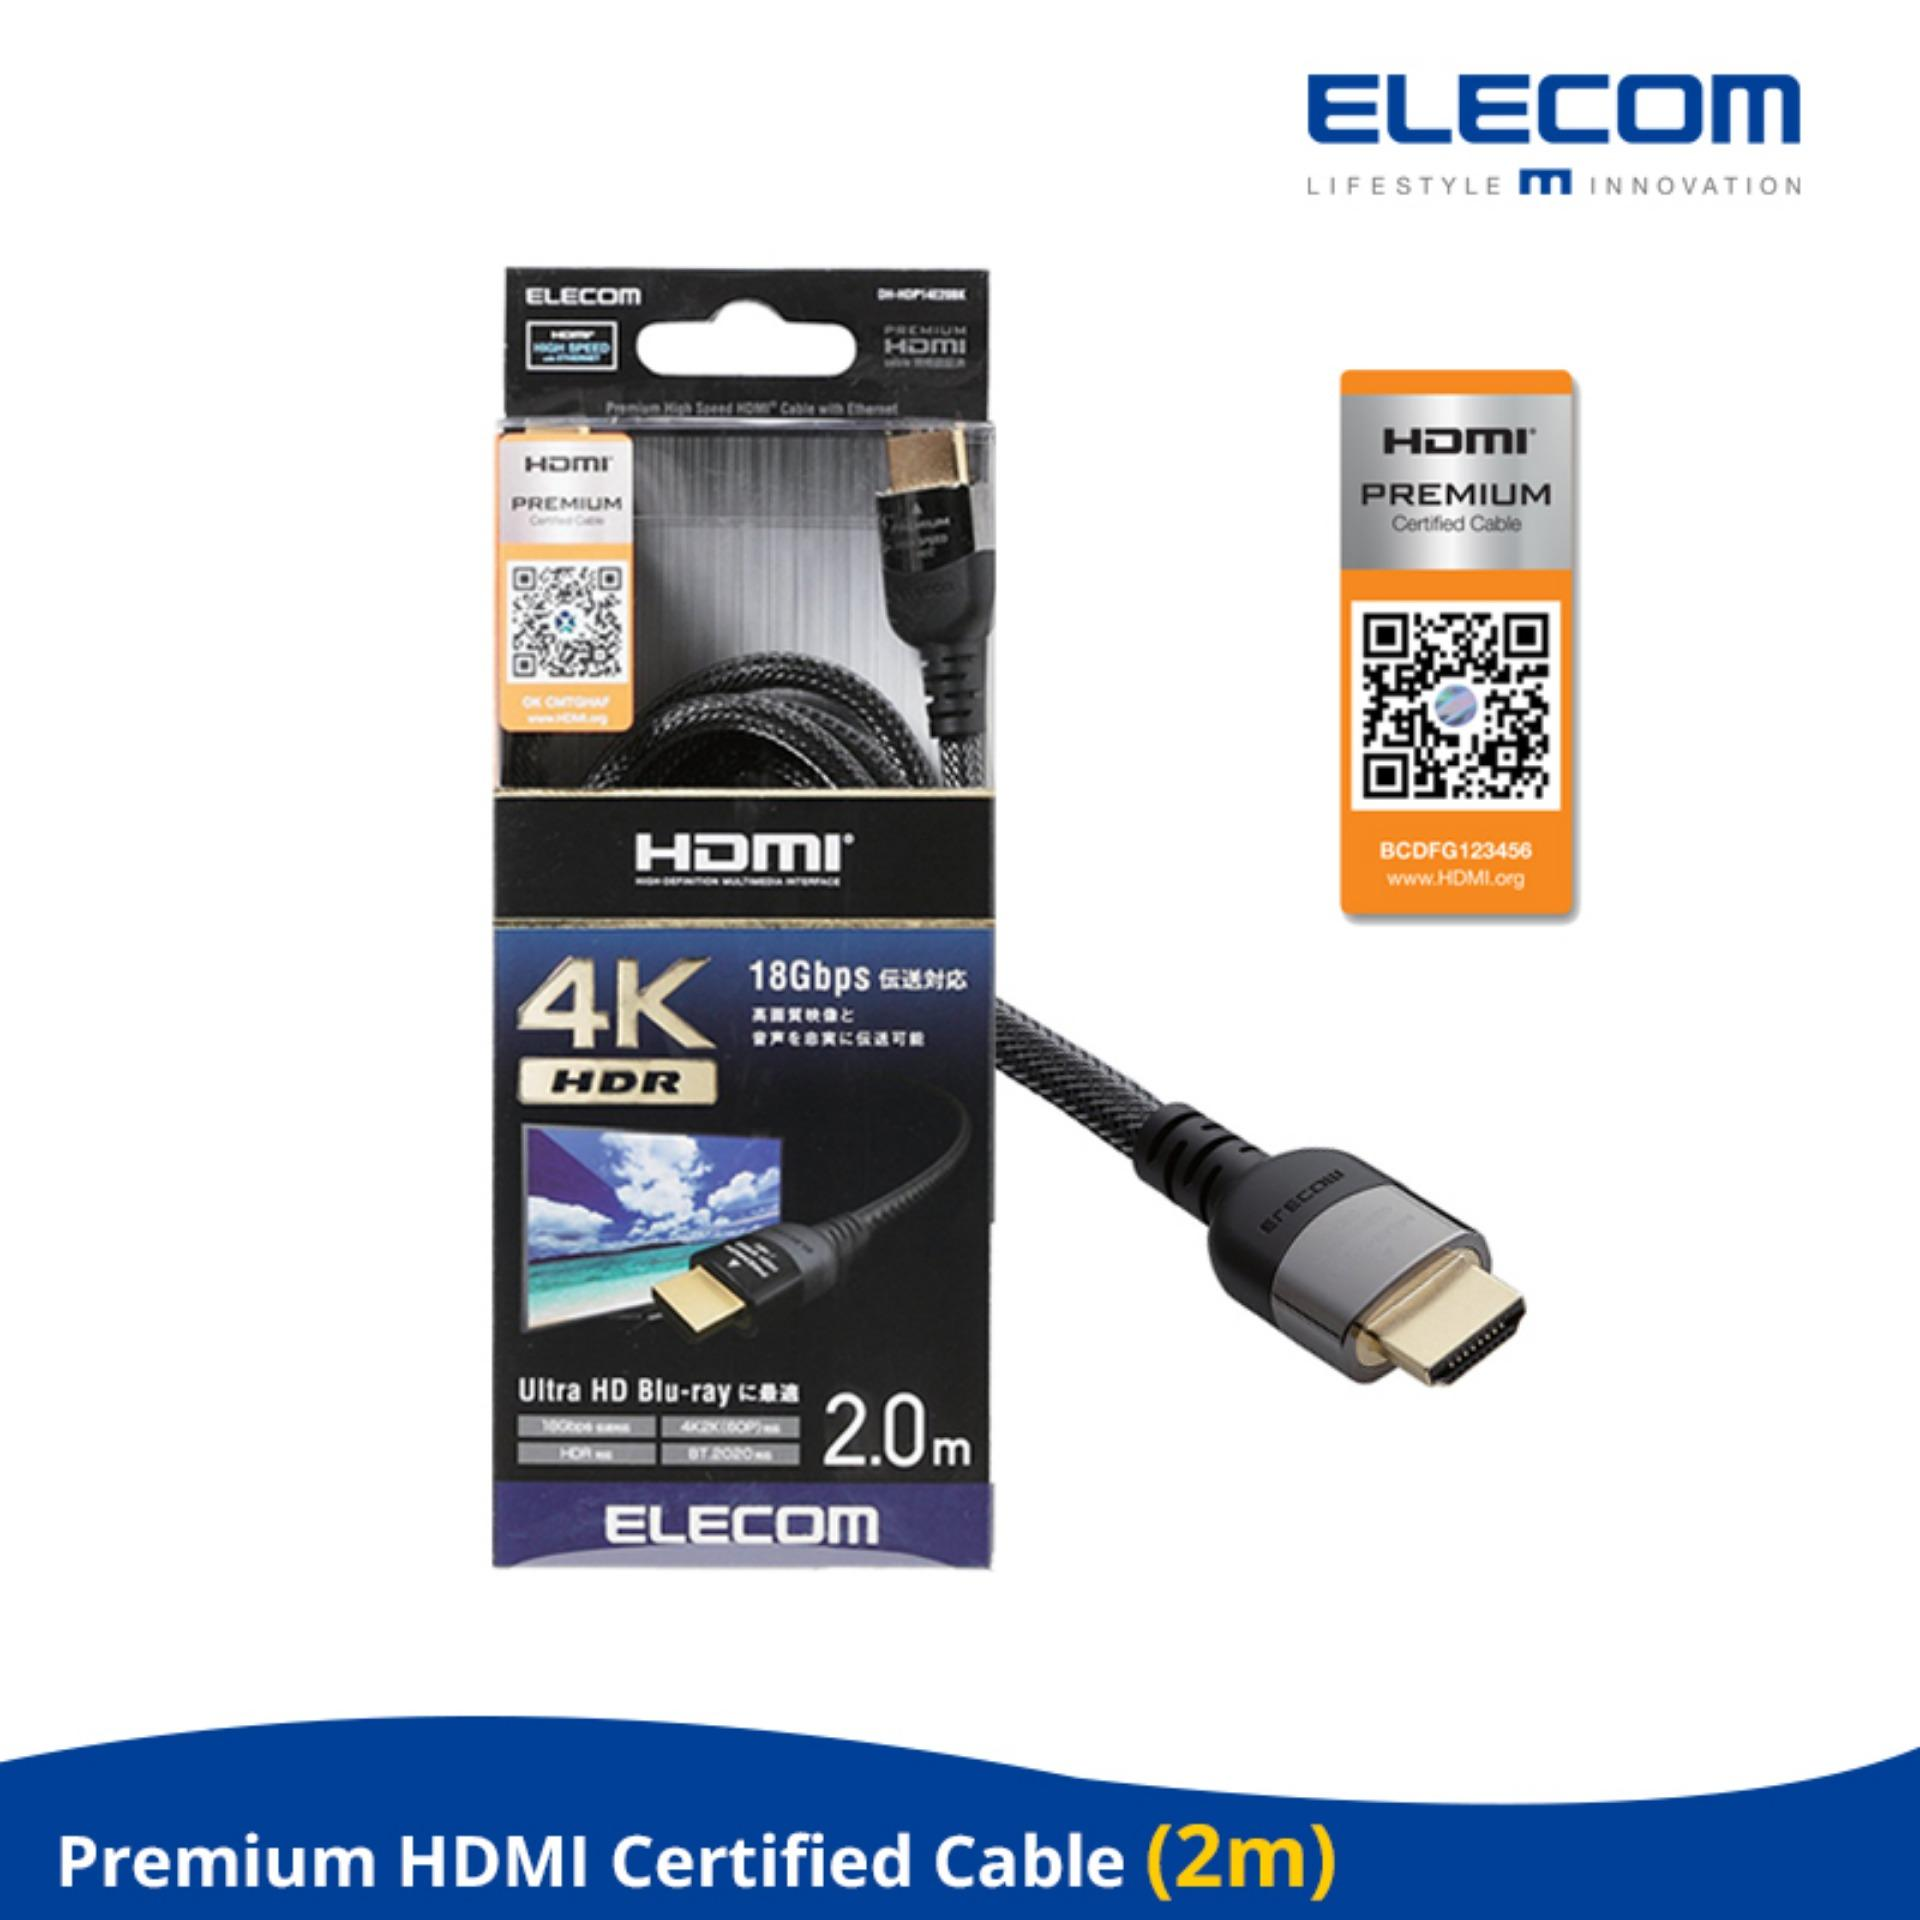 Wholesale Premium Hdmi Certified Cable 18Gbps Transmission Ultra Hd Blu Ray High Grade Model Uhd Tv 4K Ps3 Ps4 Wii Xbox 2M